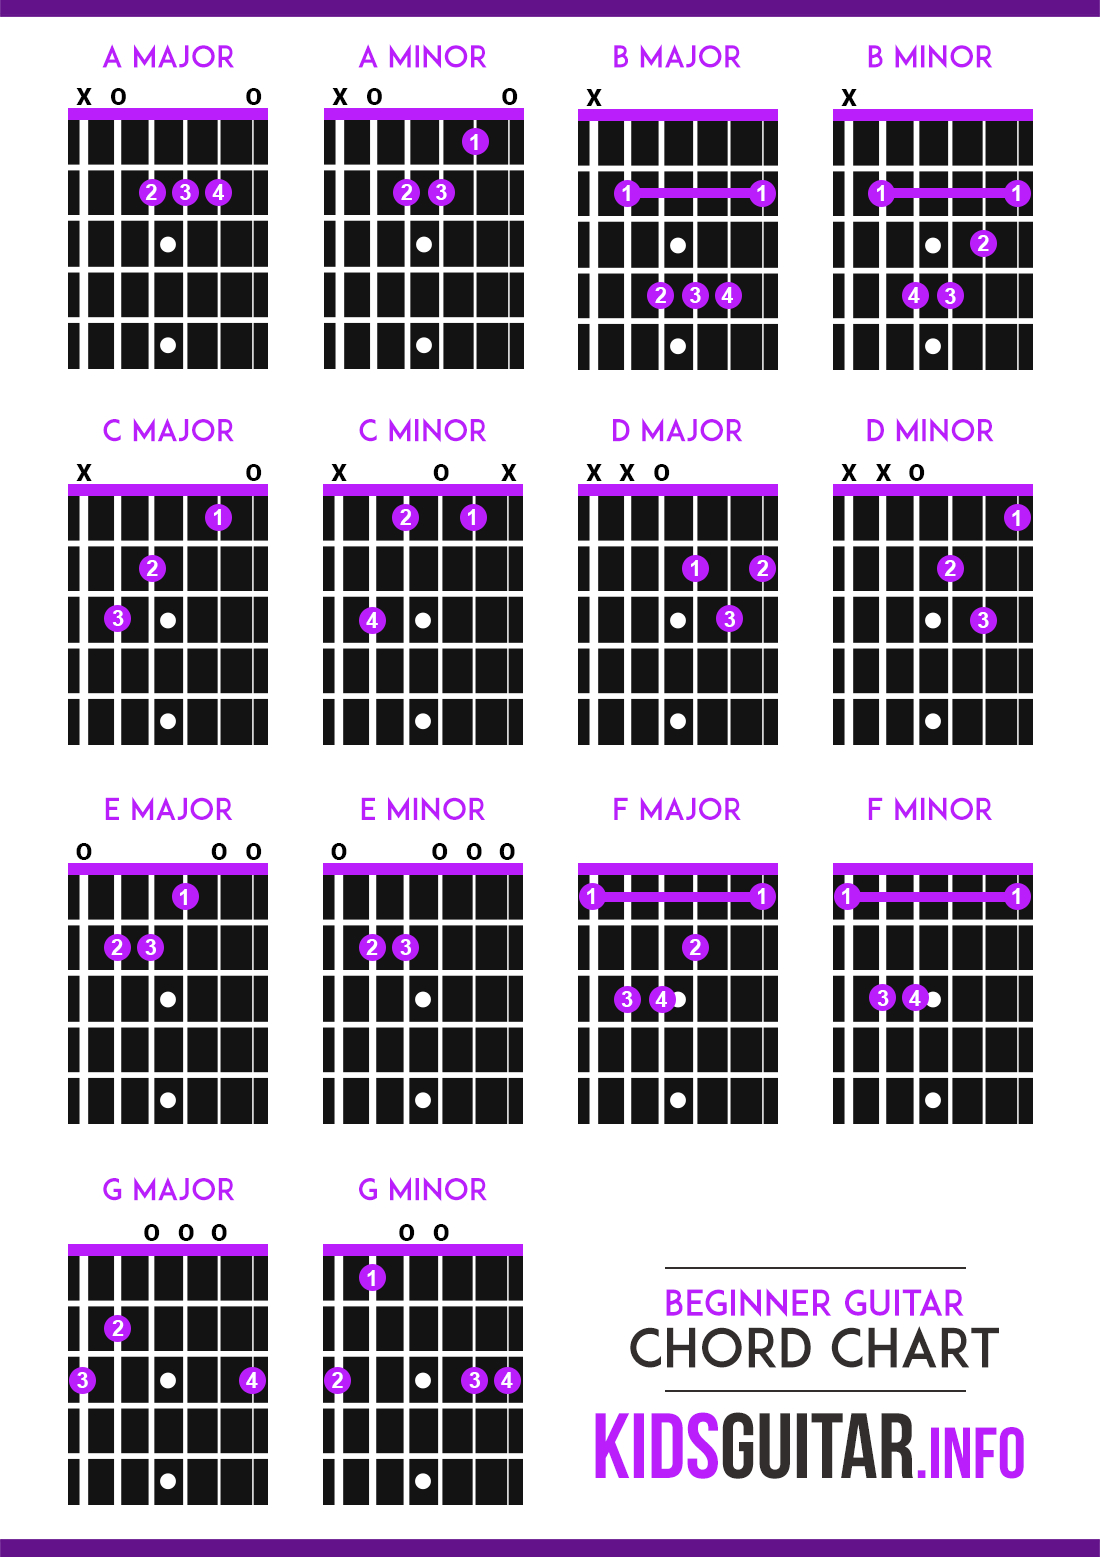 Guitar Chords For Beginners Beginner Guitar Chords Lesson With Sound And Printable Chart